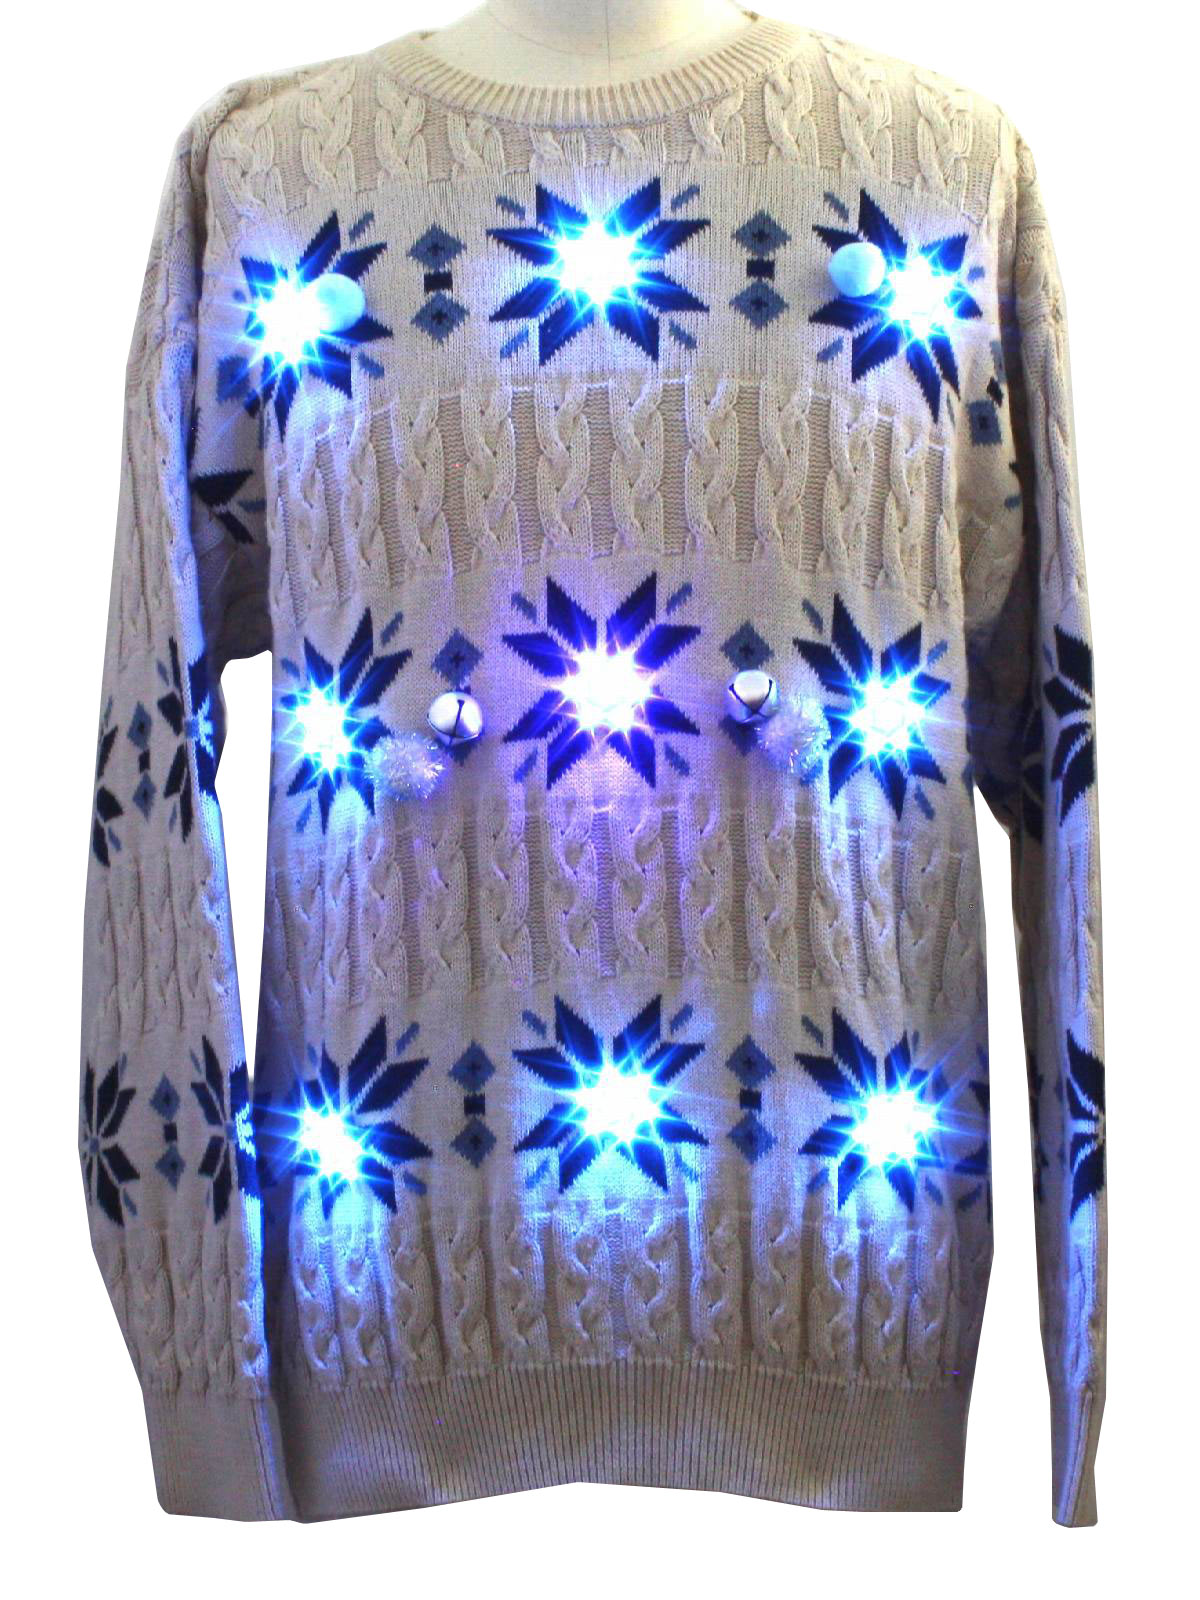 Mens Super Jew Lightup Cable Knit Ugly Christmas Style Lightup